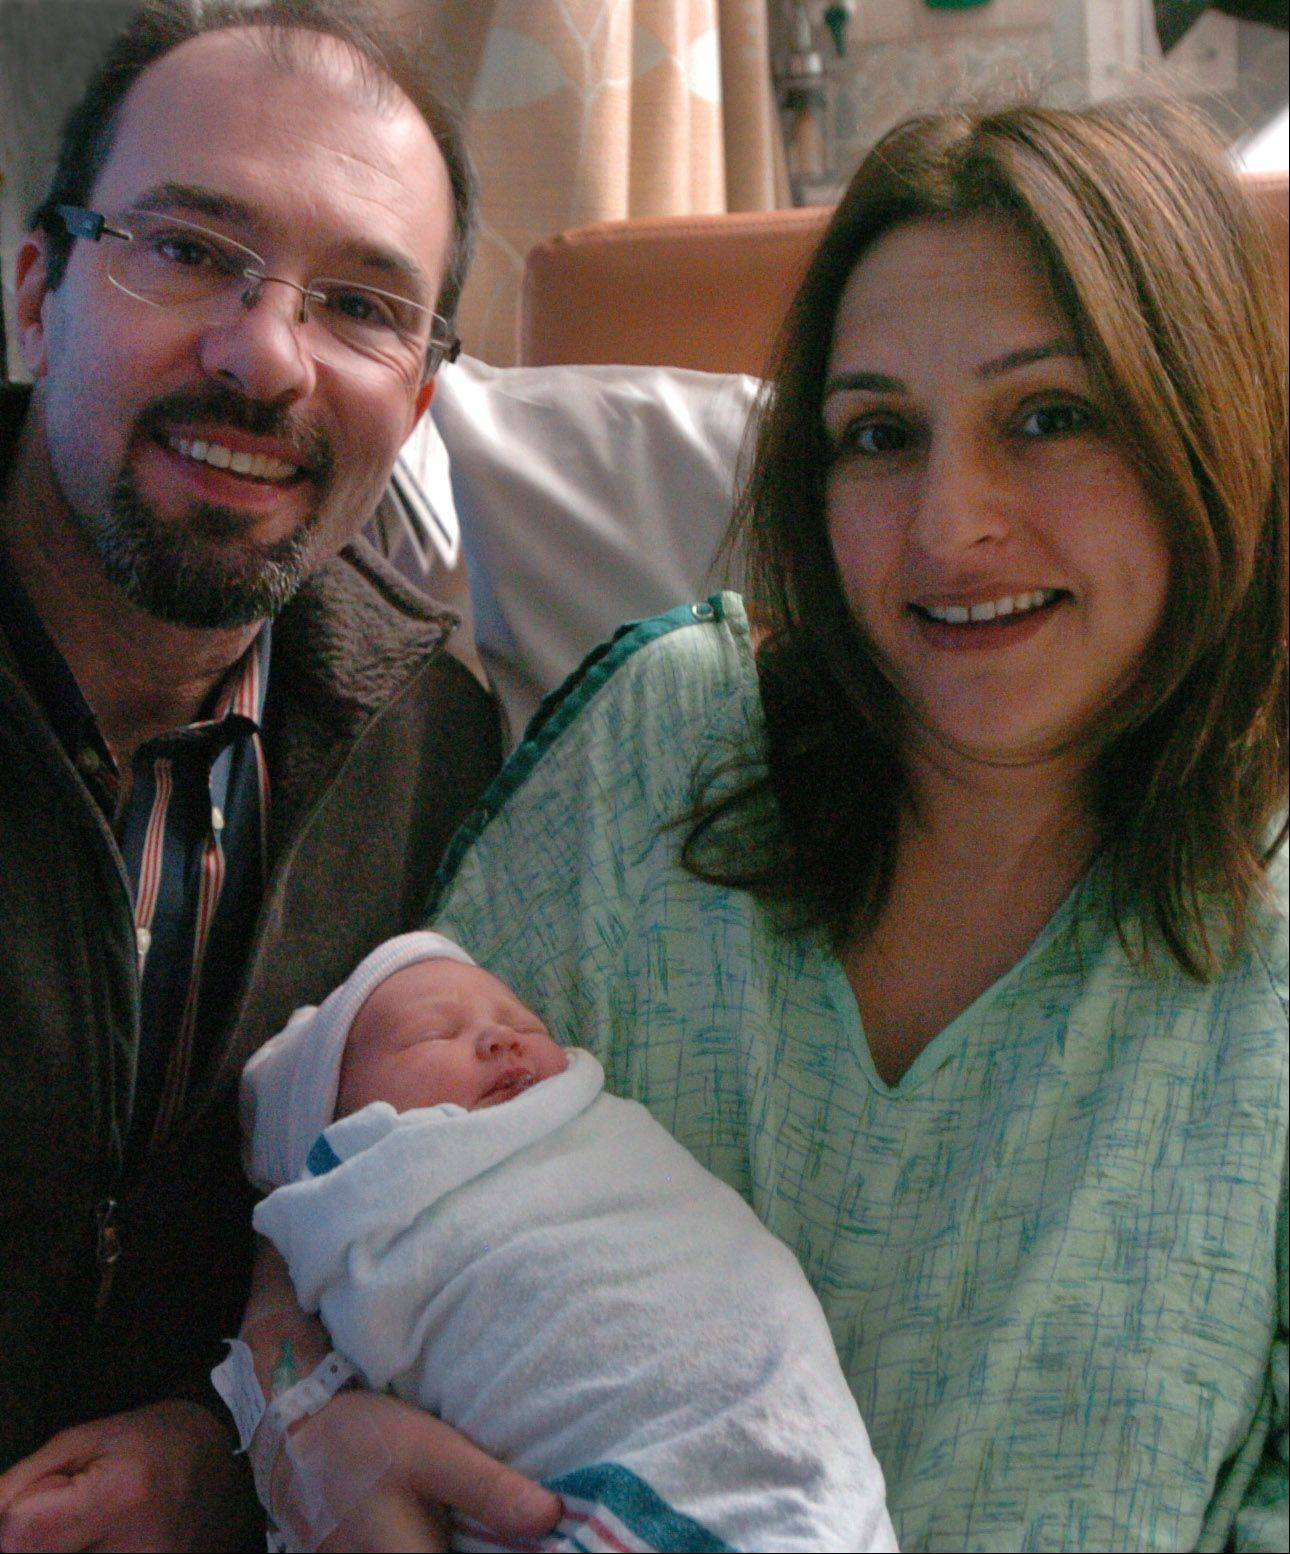 Hope Labbe, born at 12:13 a.m. on New Year's Day, rests with mother and father Fidan and Sean Labbe of Aurora, at St. Alexius Medical Center in Hoffman Estates. She was the first baby born in Northwest Cook County.